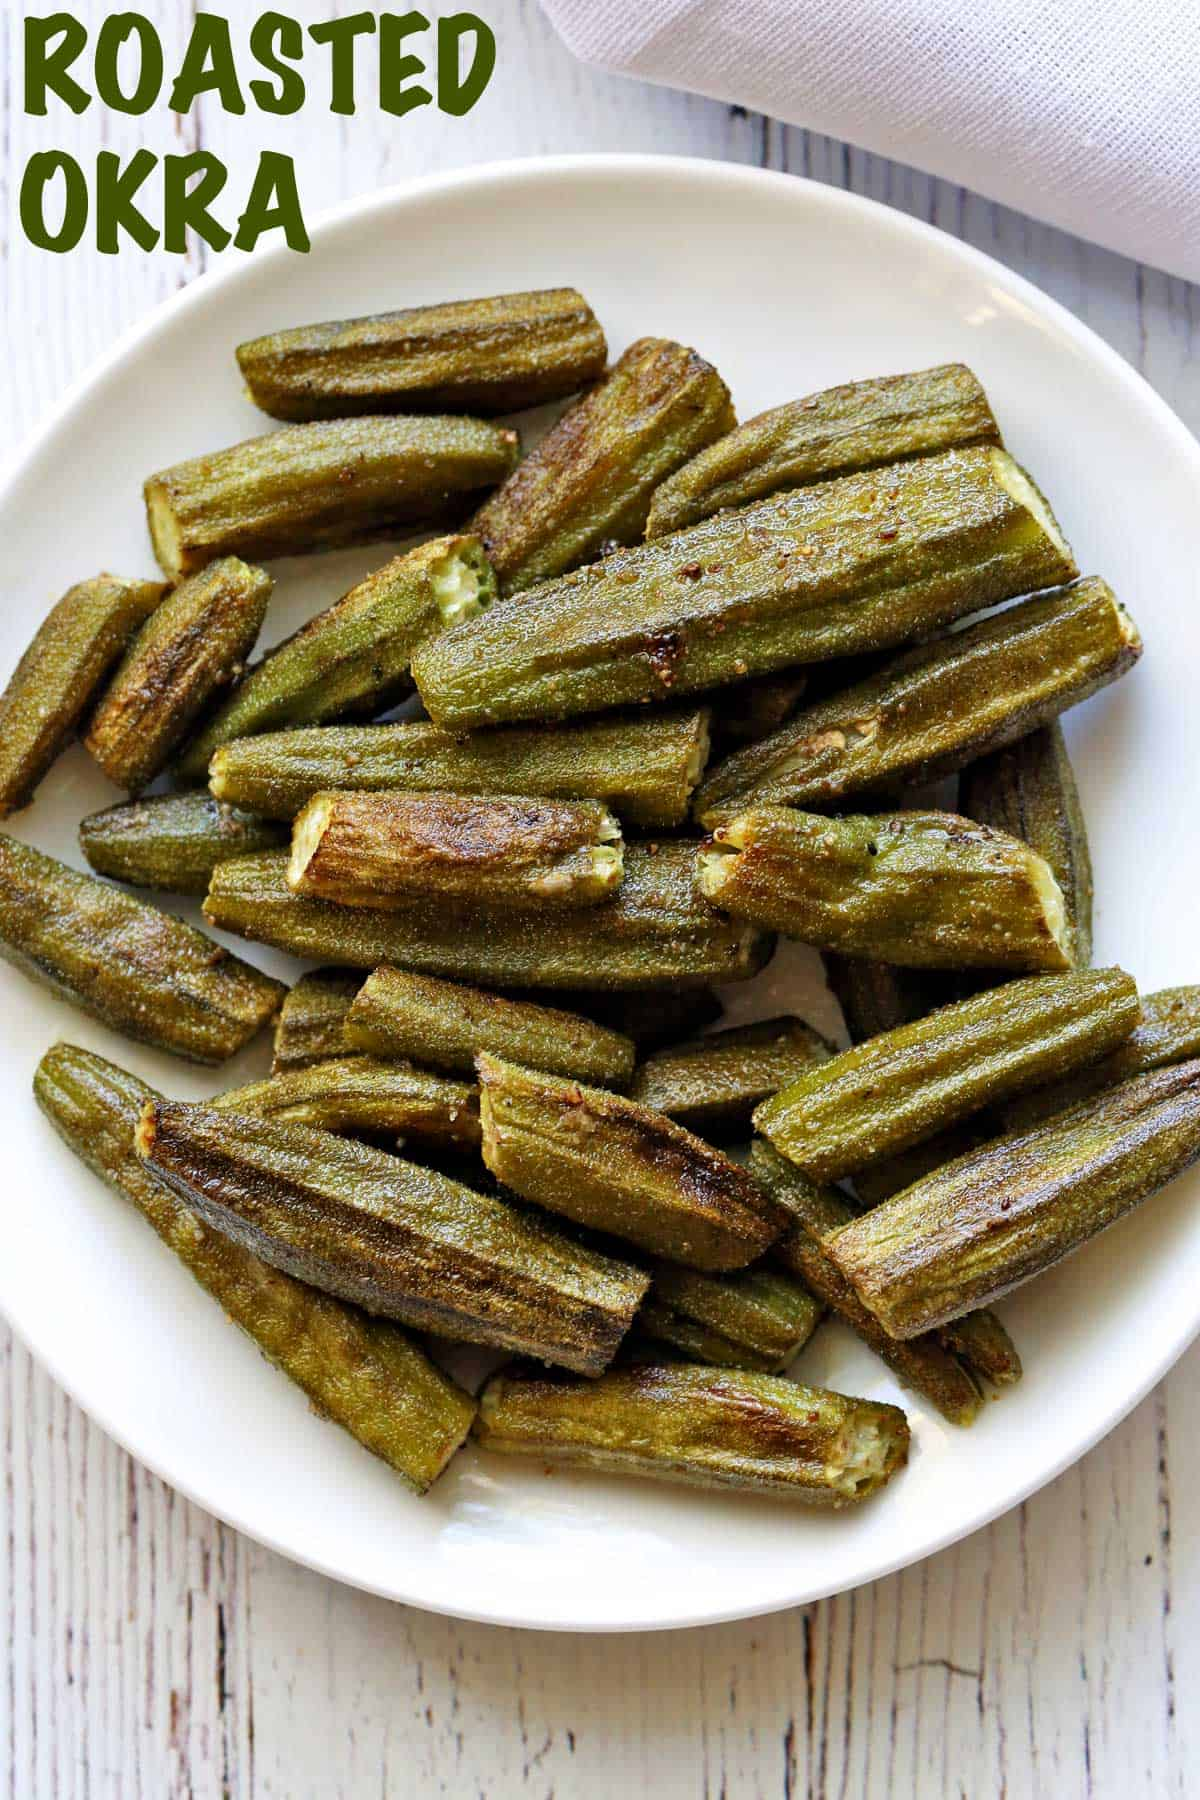 Roasted okra served on a white plate with a white napkin.